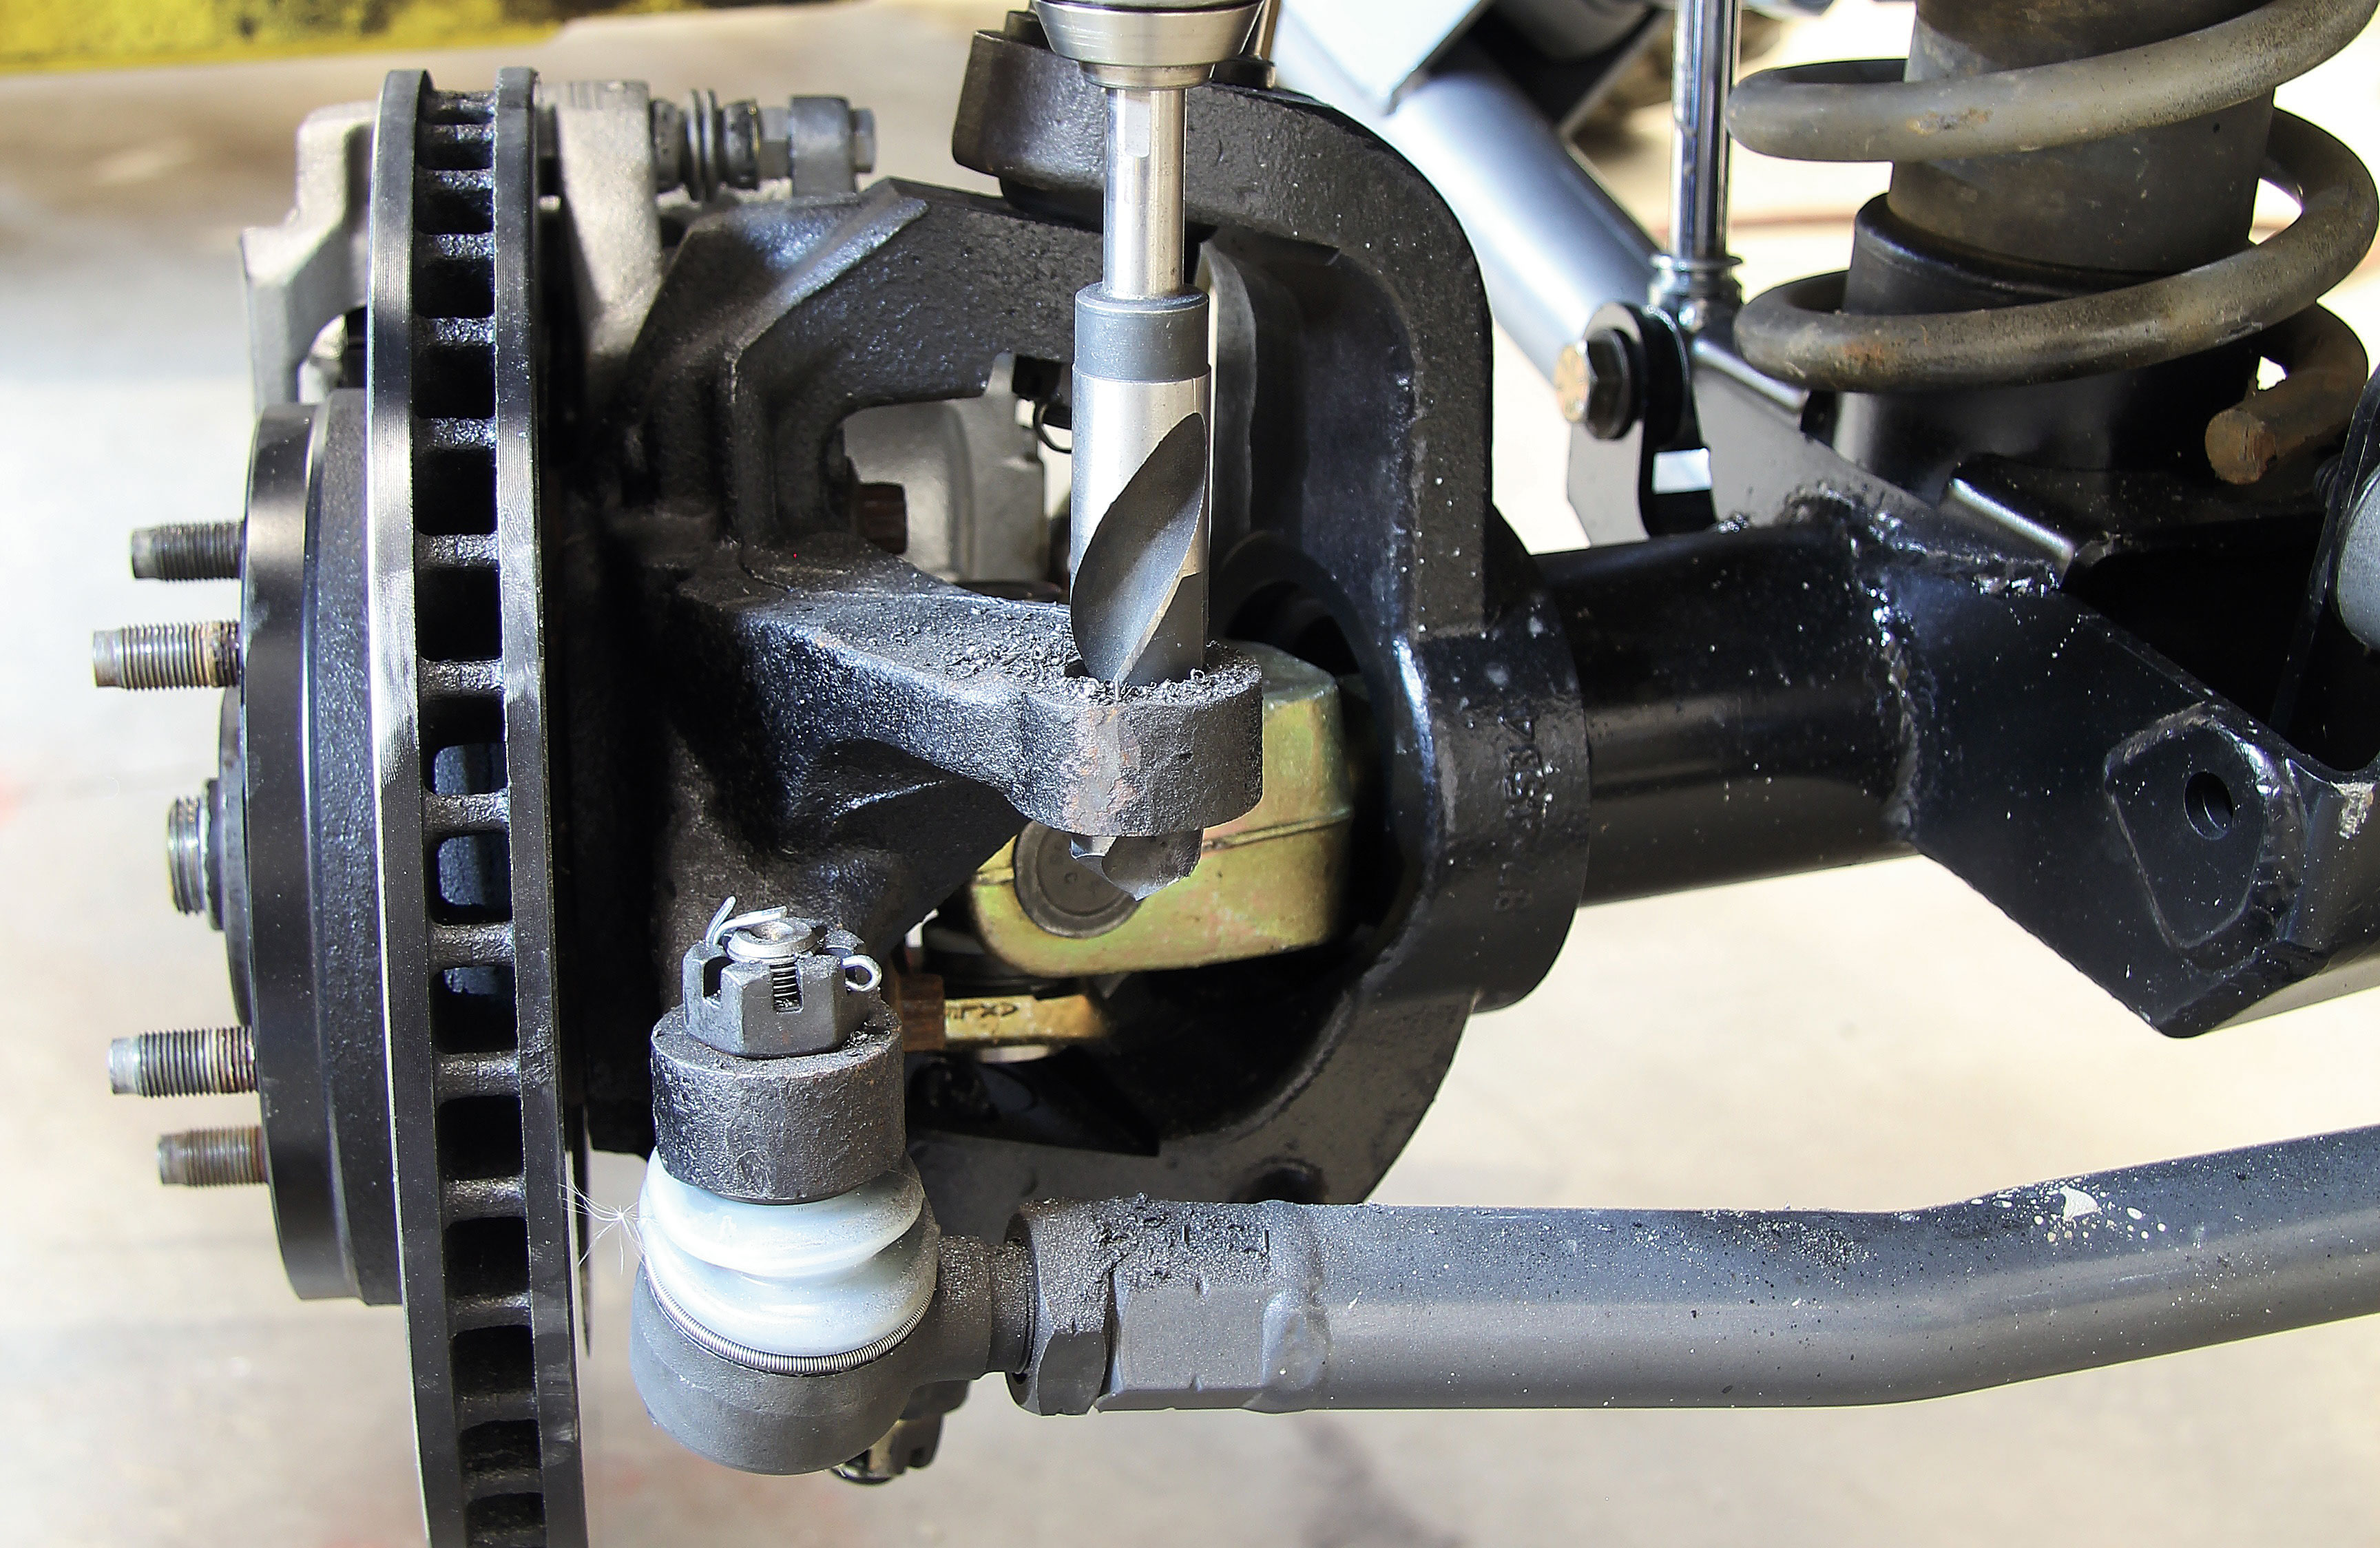 To make sure our steering geometry matched up with our track bar, we opted to run the draglink tie-rod end on top of the steering knuckle.